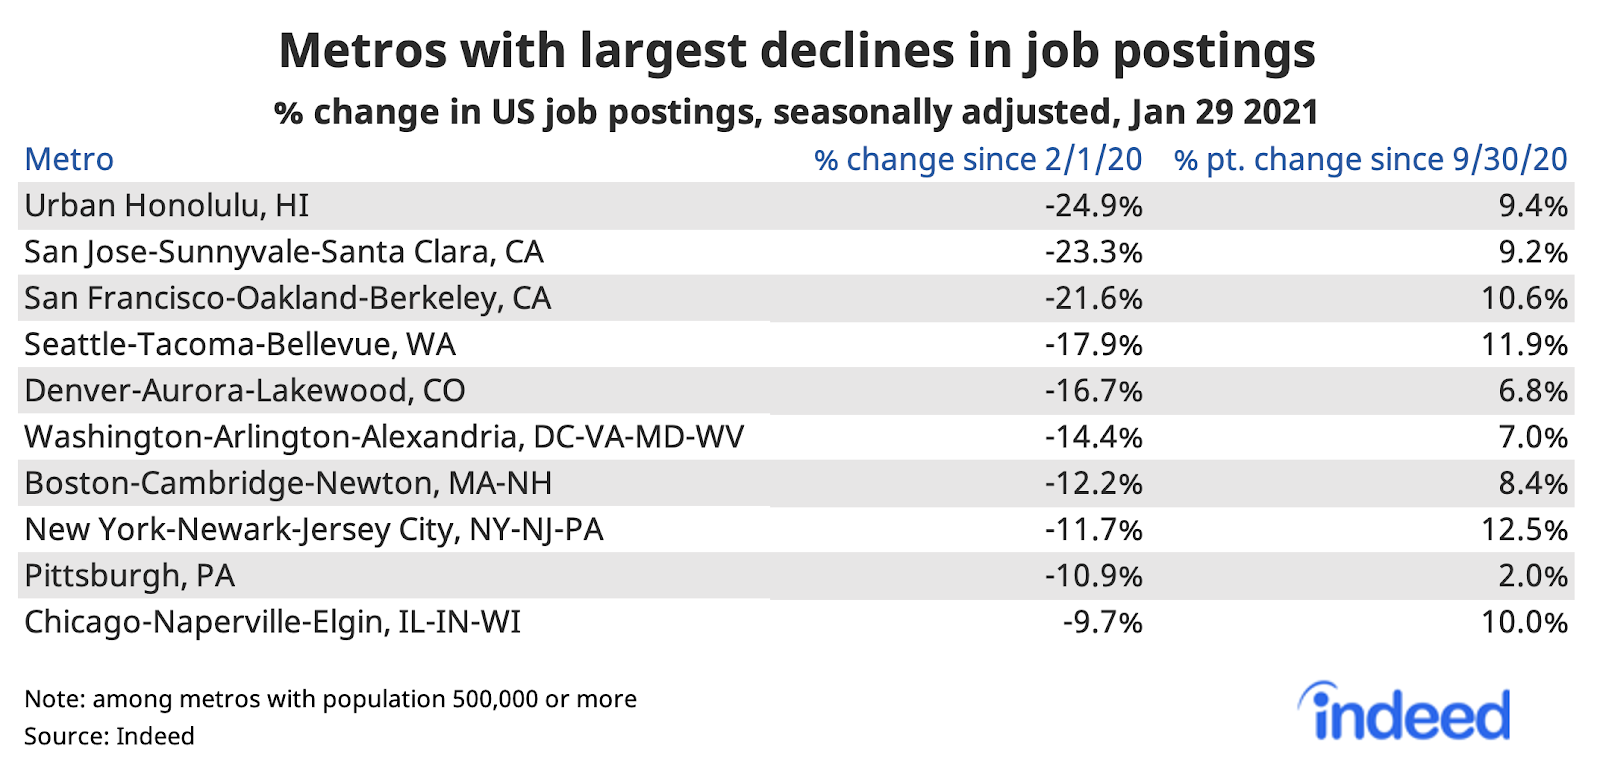 Table showing metros with largest declines in job postings